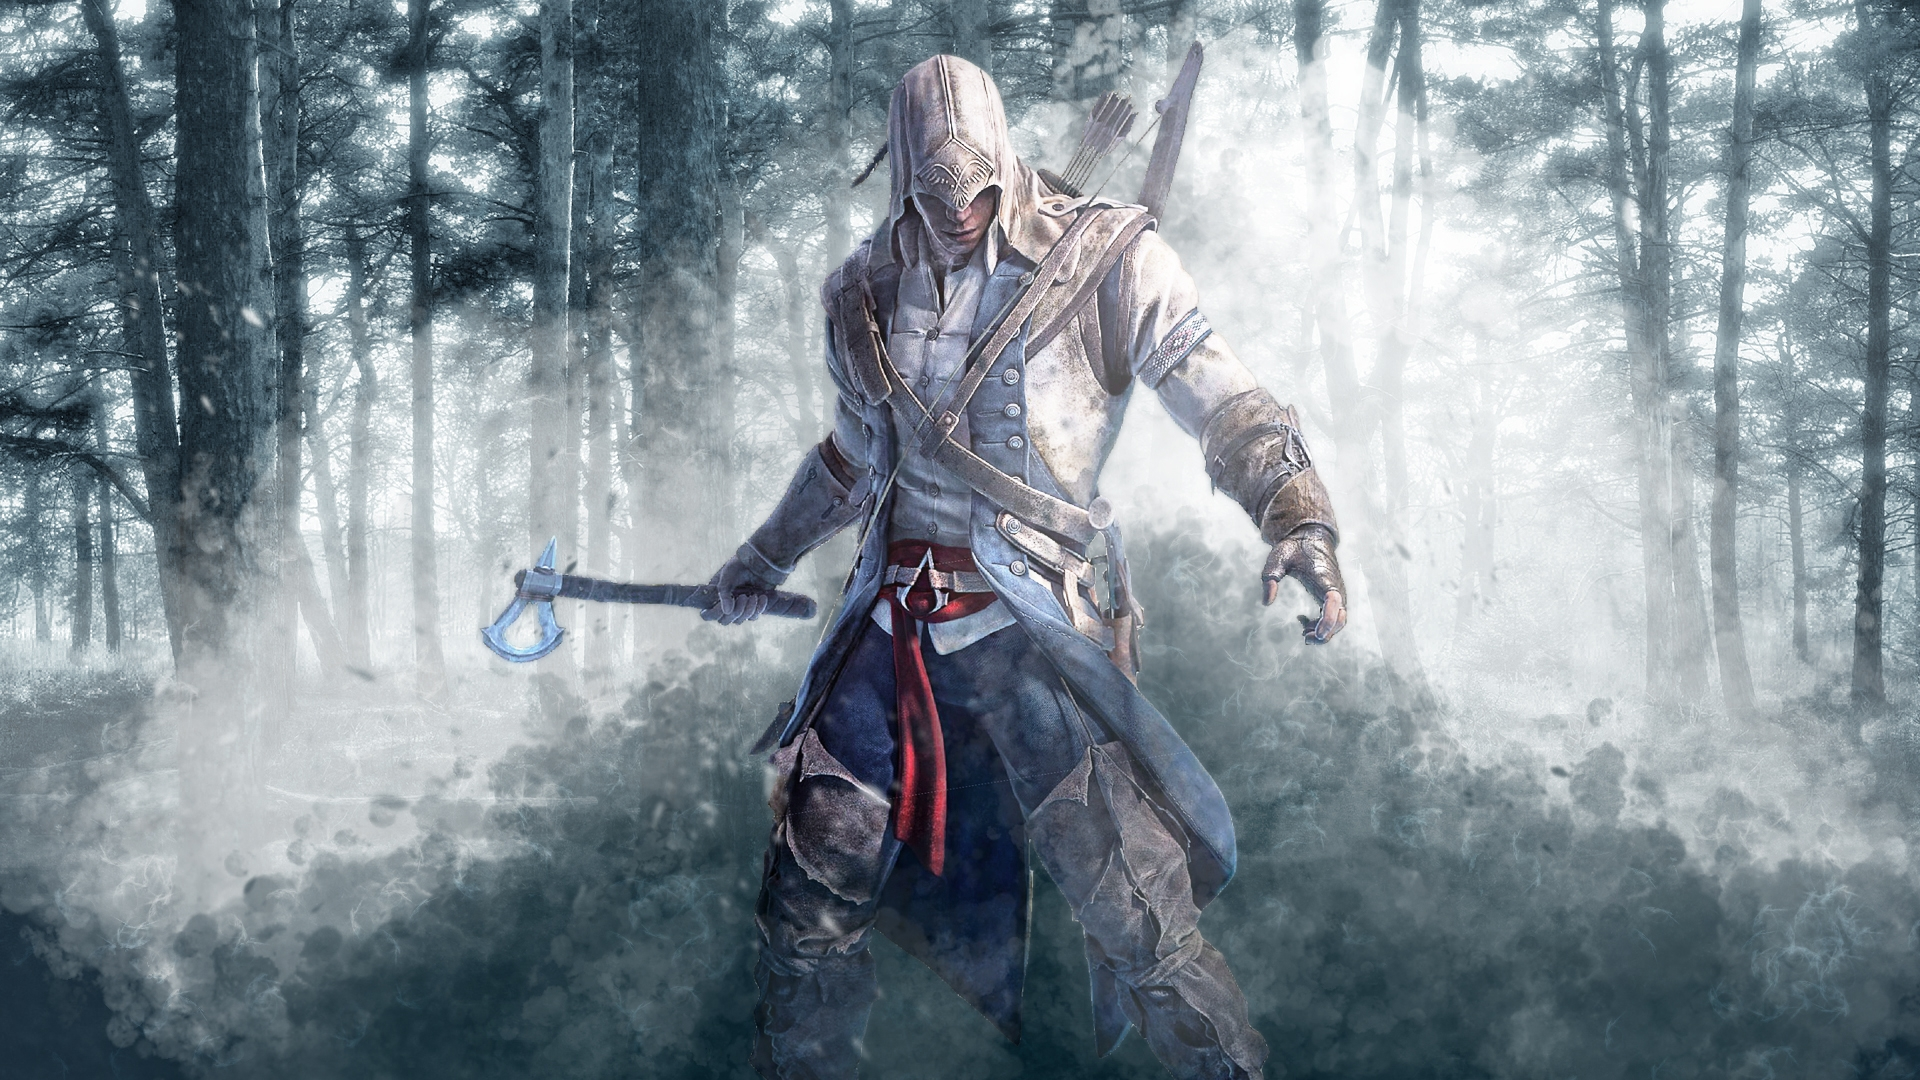 Assassins Creed Ezio Wallpapers Hd: FreeWall Assassins Creed 3 Connor Wallpapers